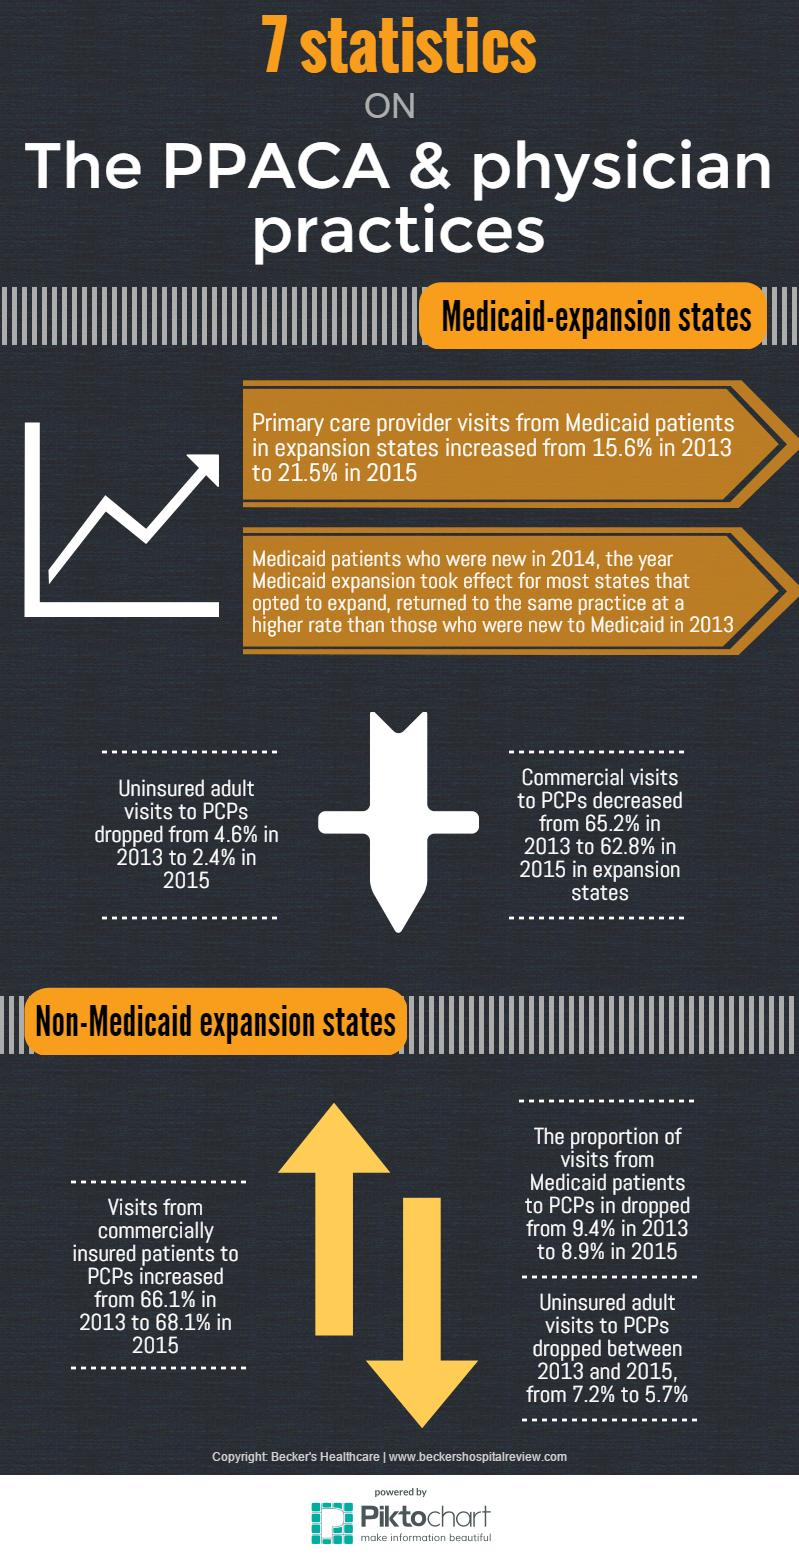 PPACA&physician practices-use